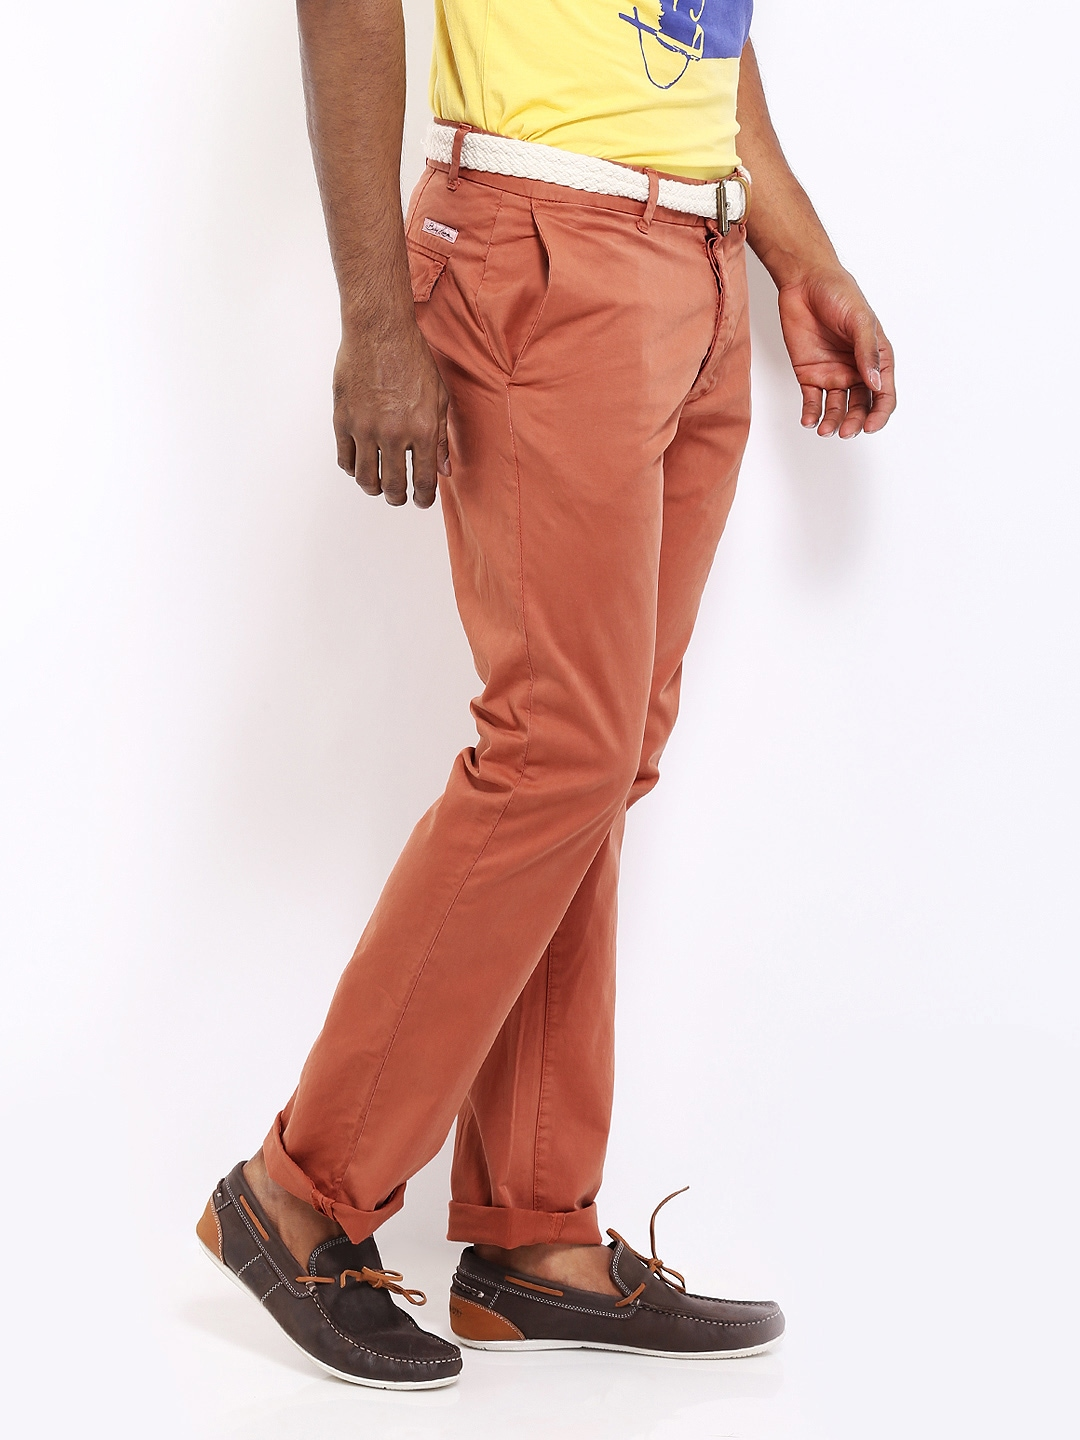 Rusty clothing online